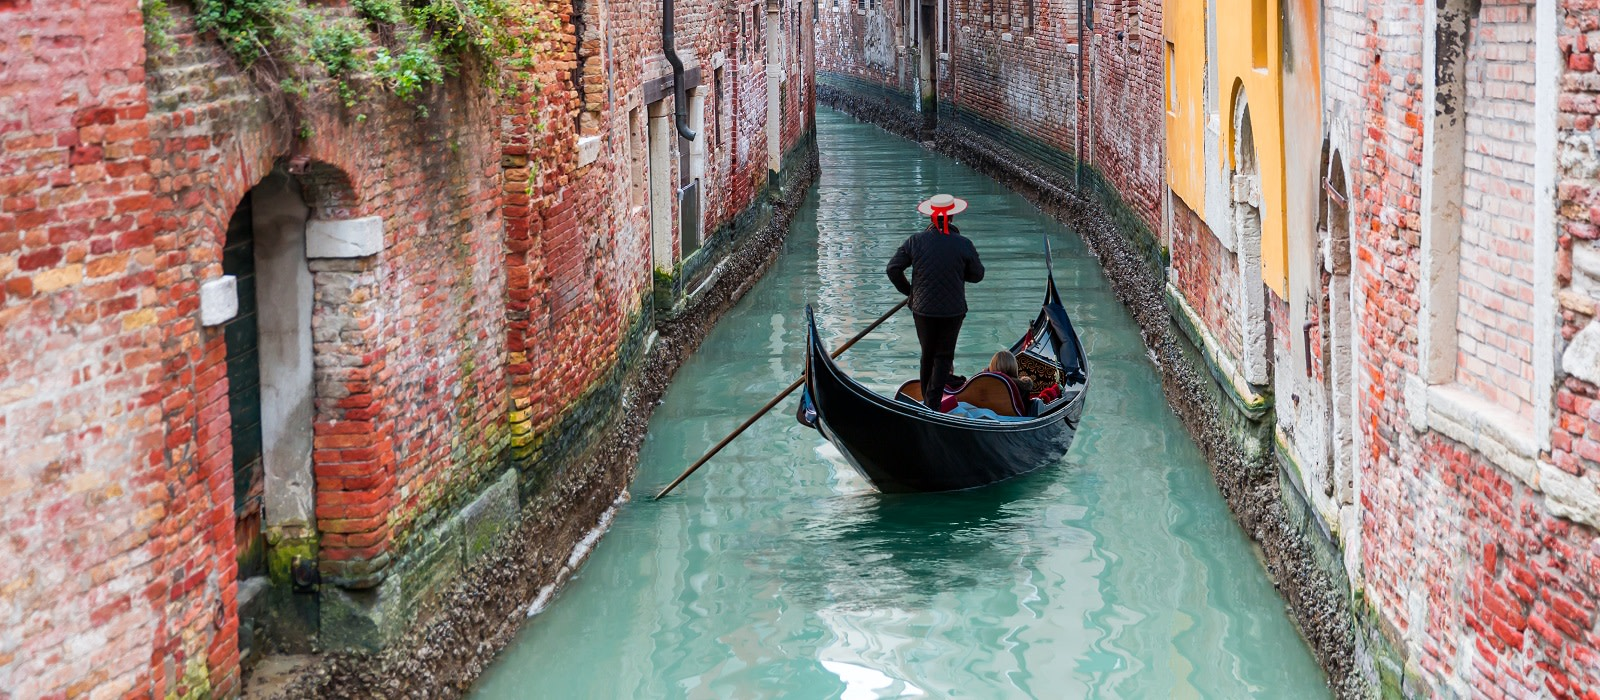 Enchanting Travels Italy Tours Venetian gondolier punting gondola through green canal waters of Venice Italy